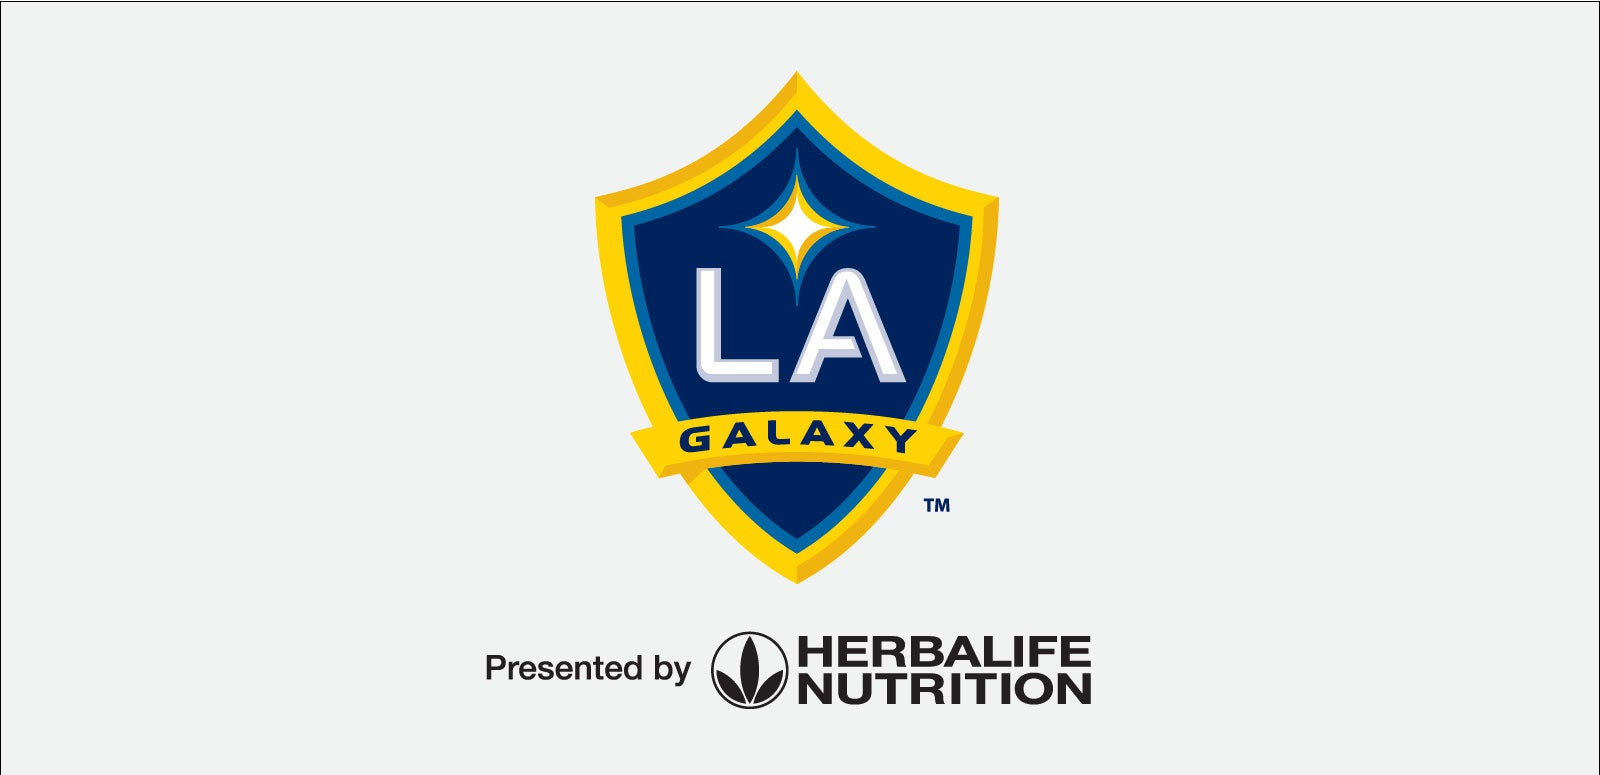 LA Galaxy vs. Real Salt Lake